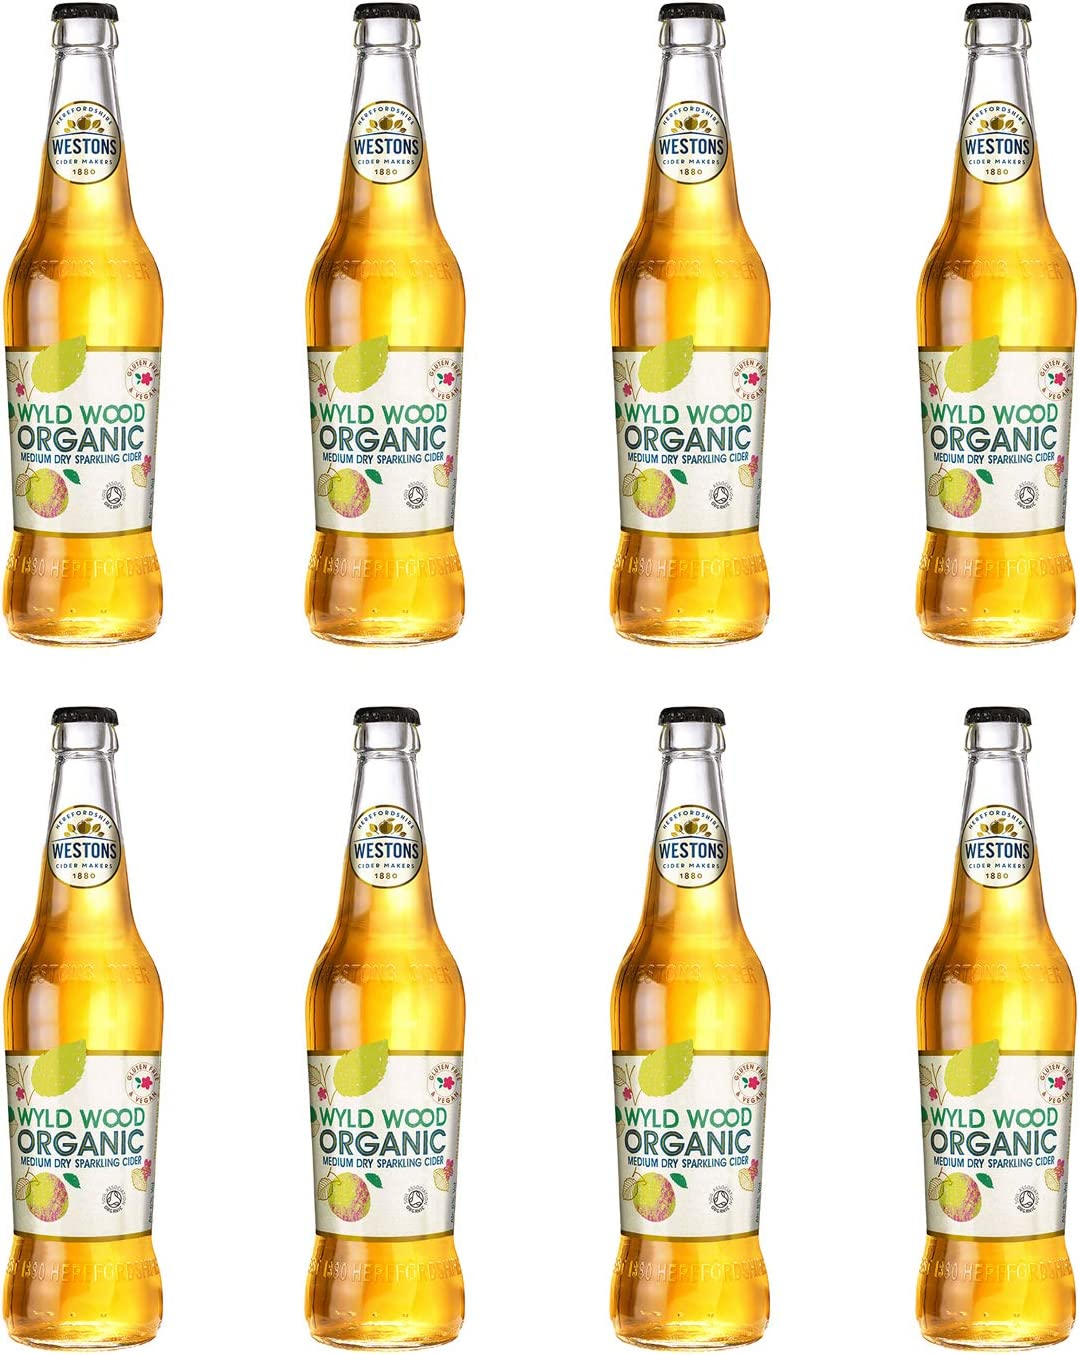 Westons – Wyld Wood Organic Cider 8x 500ml Bottles